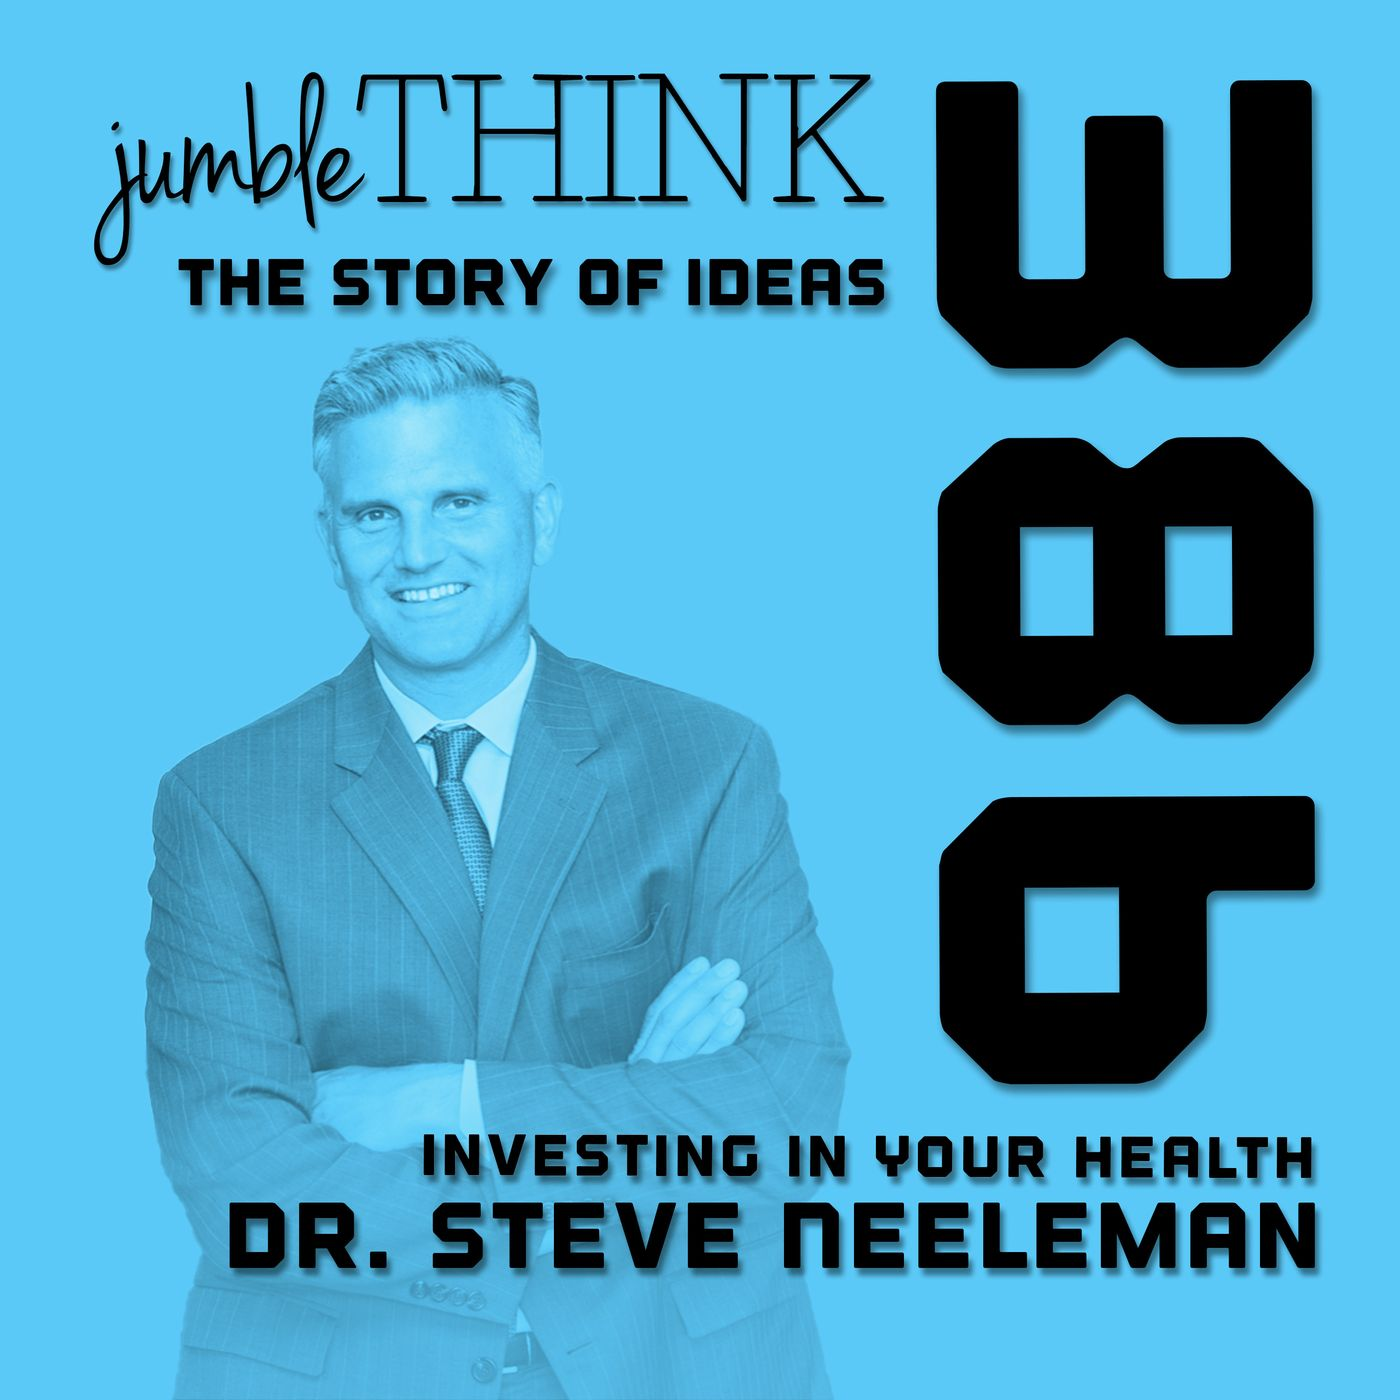 Investing in Your Health with Steve Neeleman